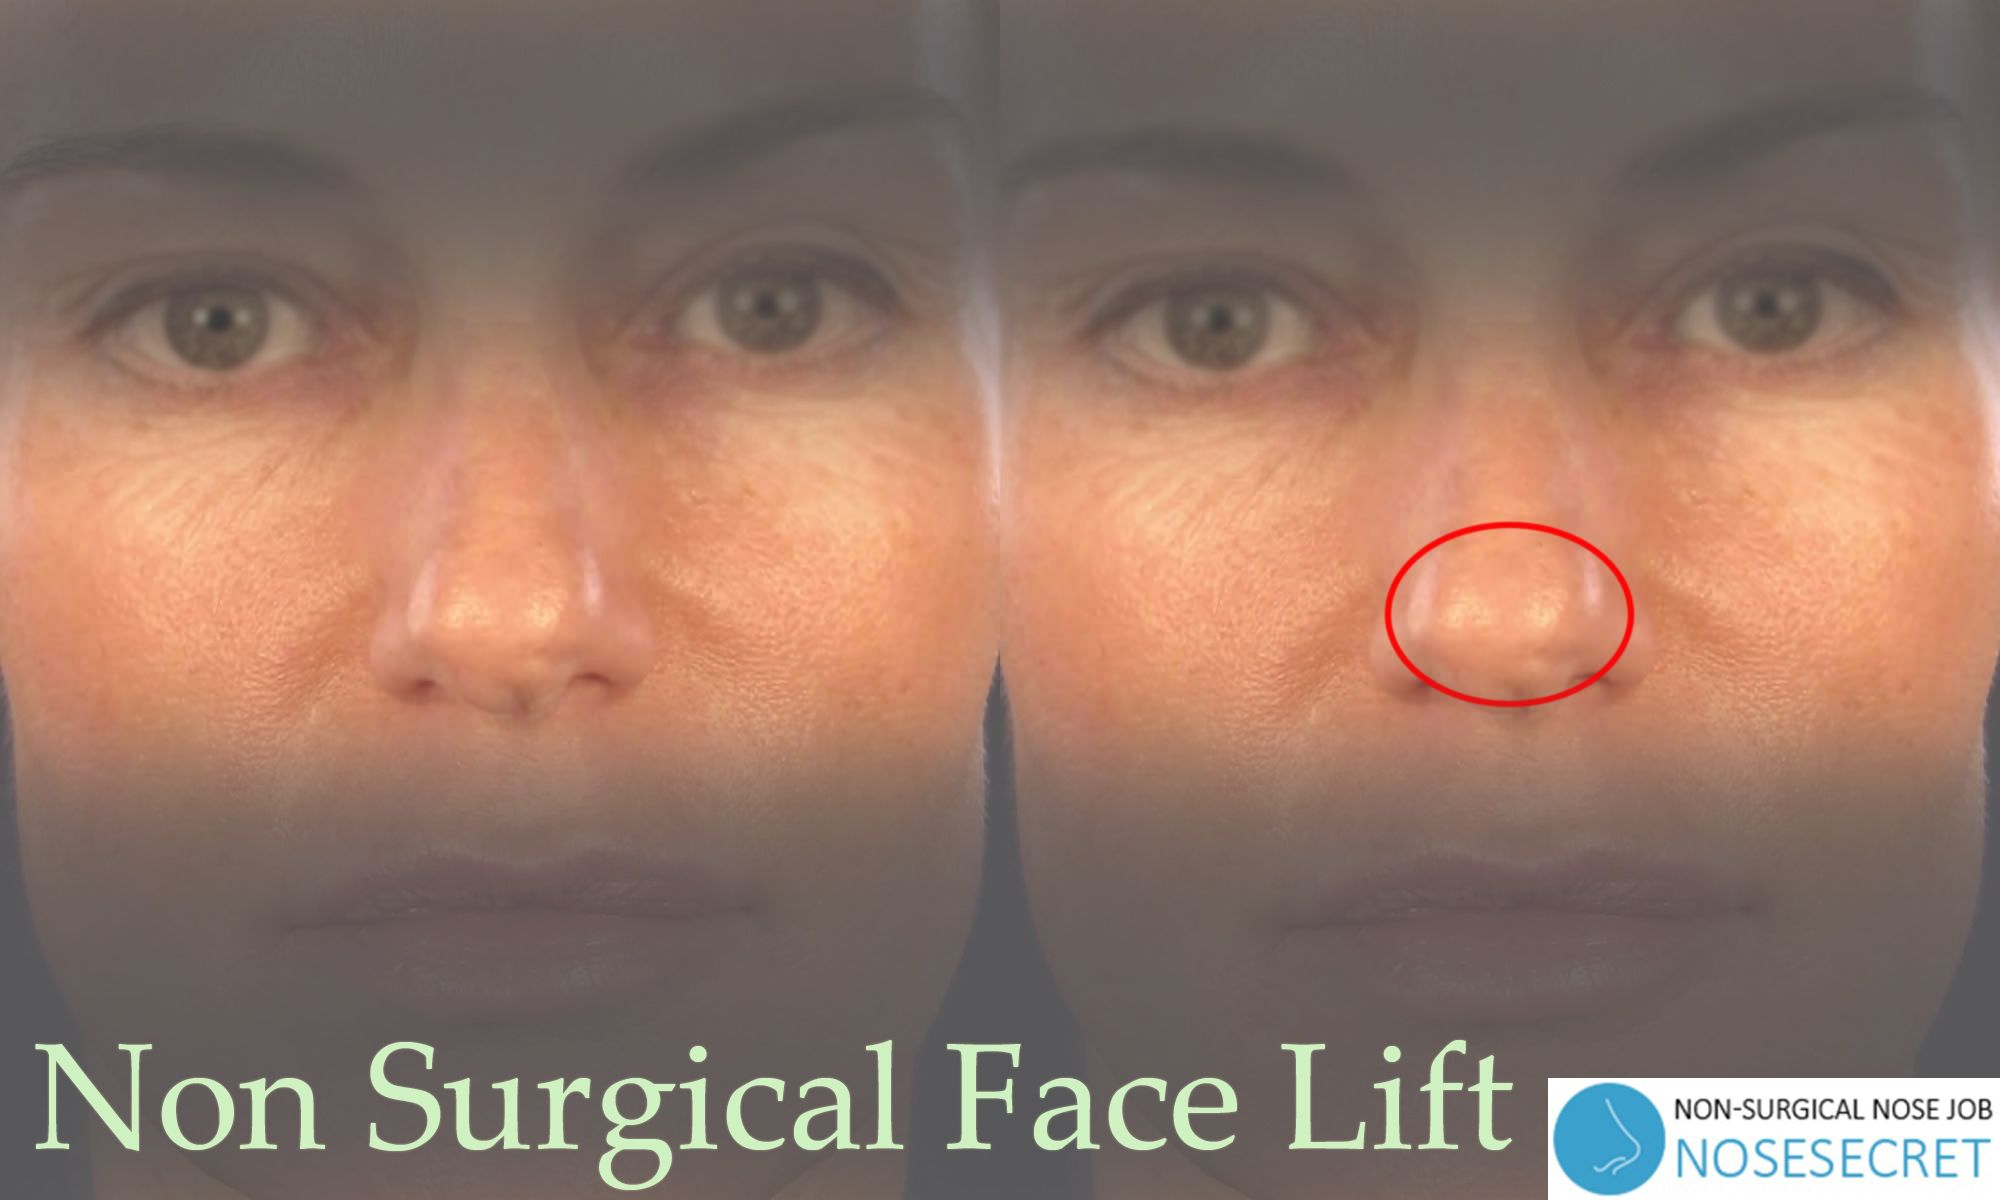 Non Surgical Nose Job For Wide Nose NoseSecret is the